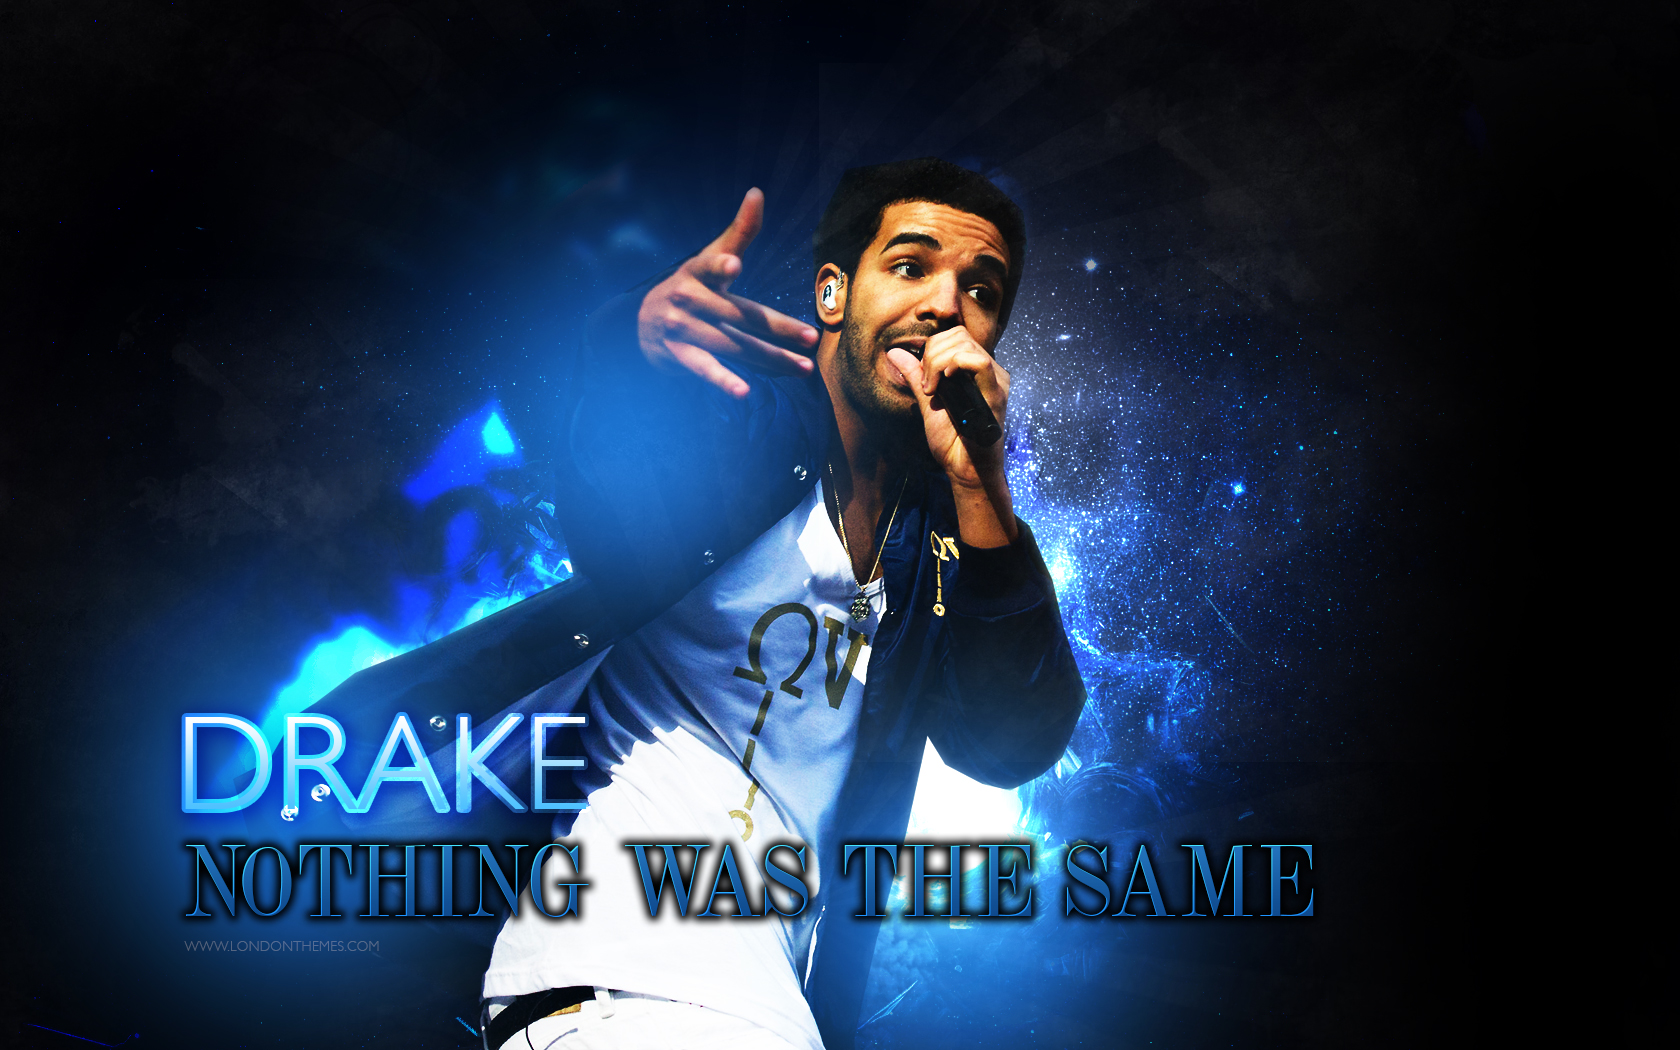 Drake Nothing Was The Same By Lilspeed On Deviantart